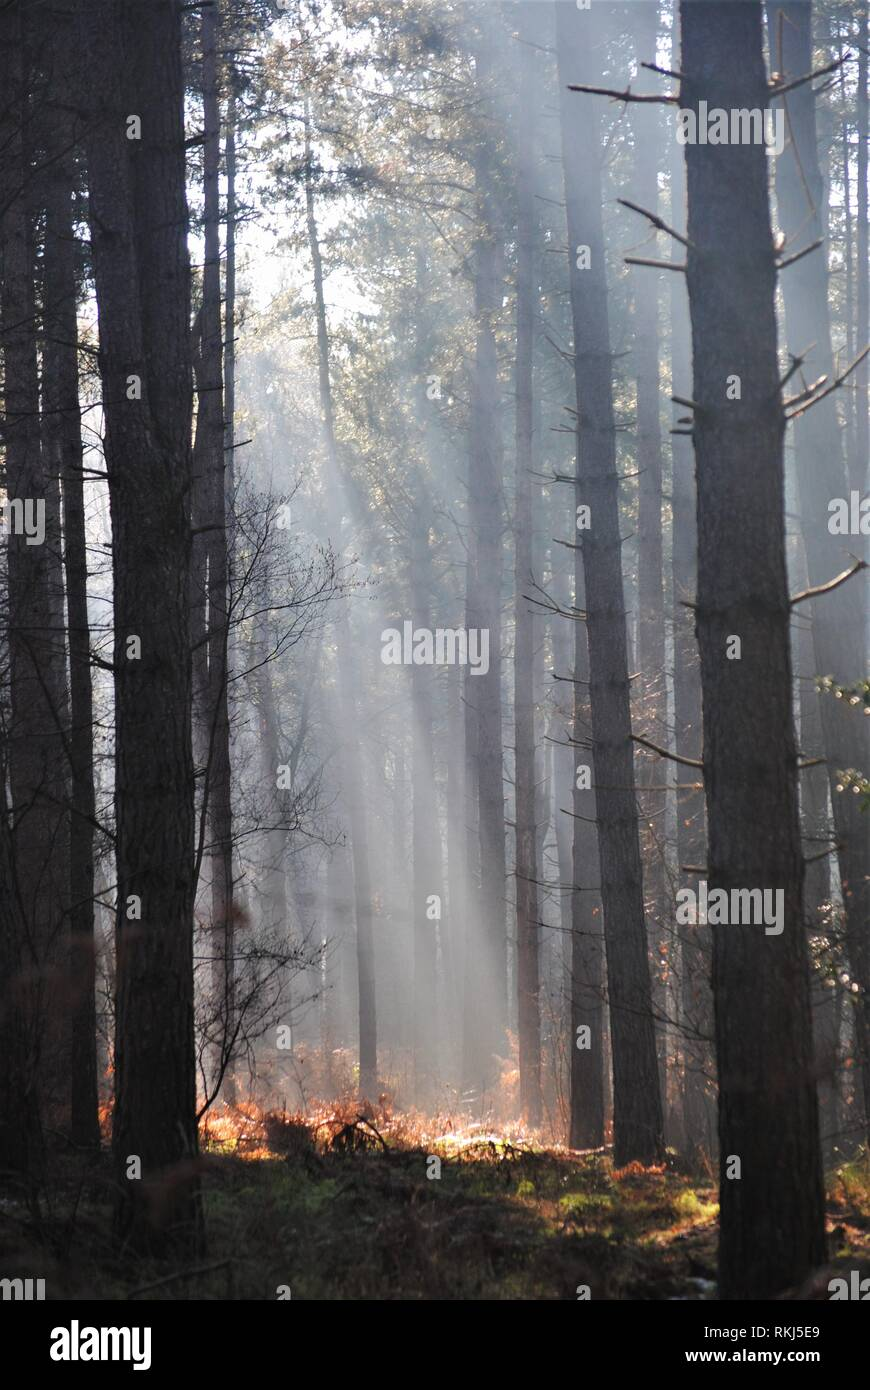 Suns Ray's beaming through the trees in a forest Ray's of light striking the forest floor in a very dramatic fashion. - Stock Image